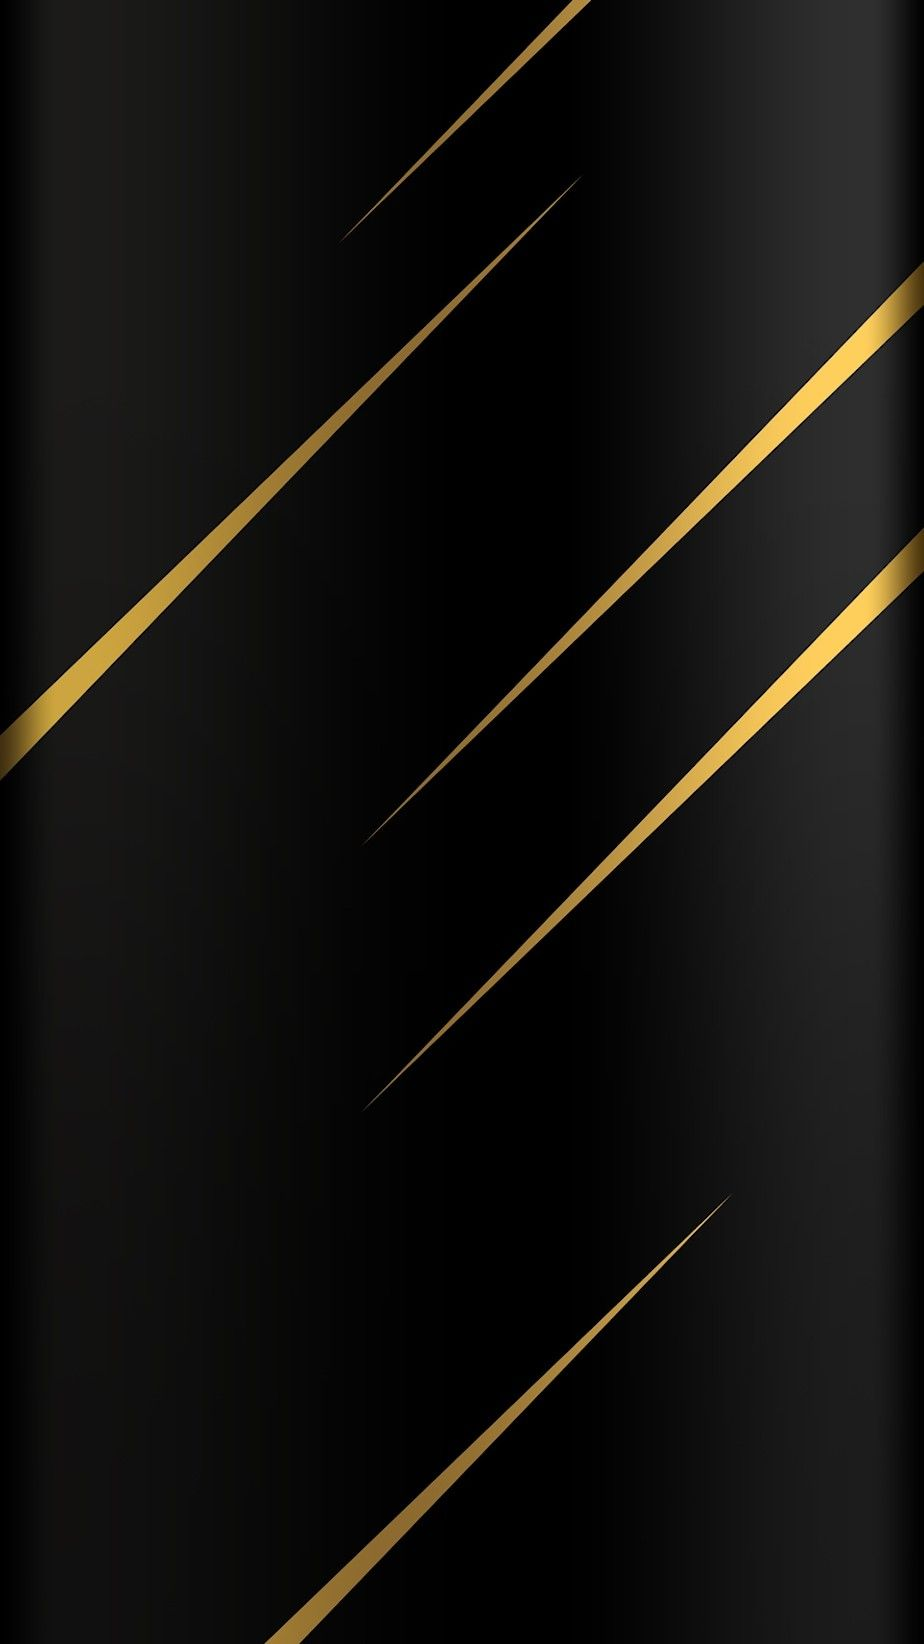 Black And Gold Wallpaper For Phone